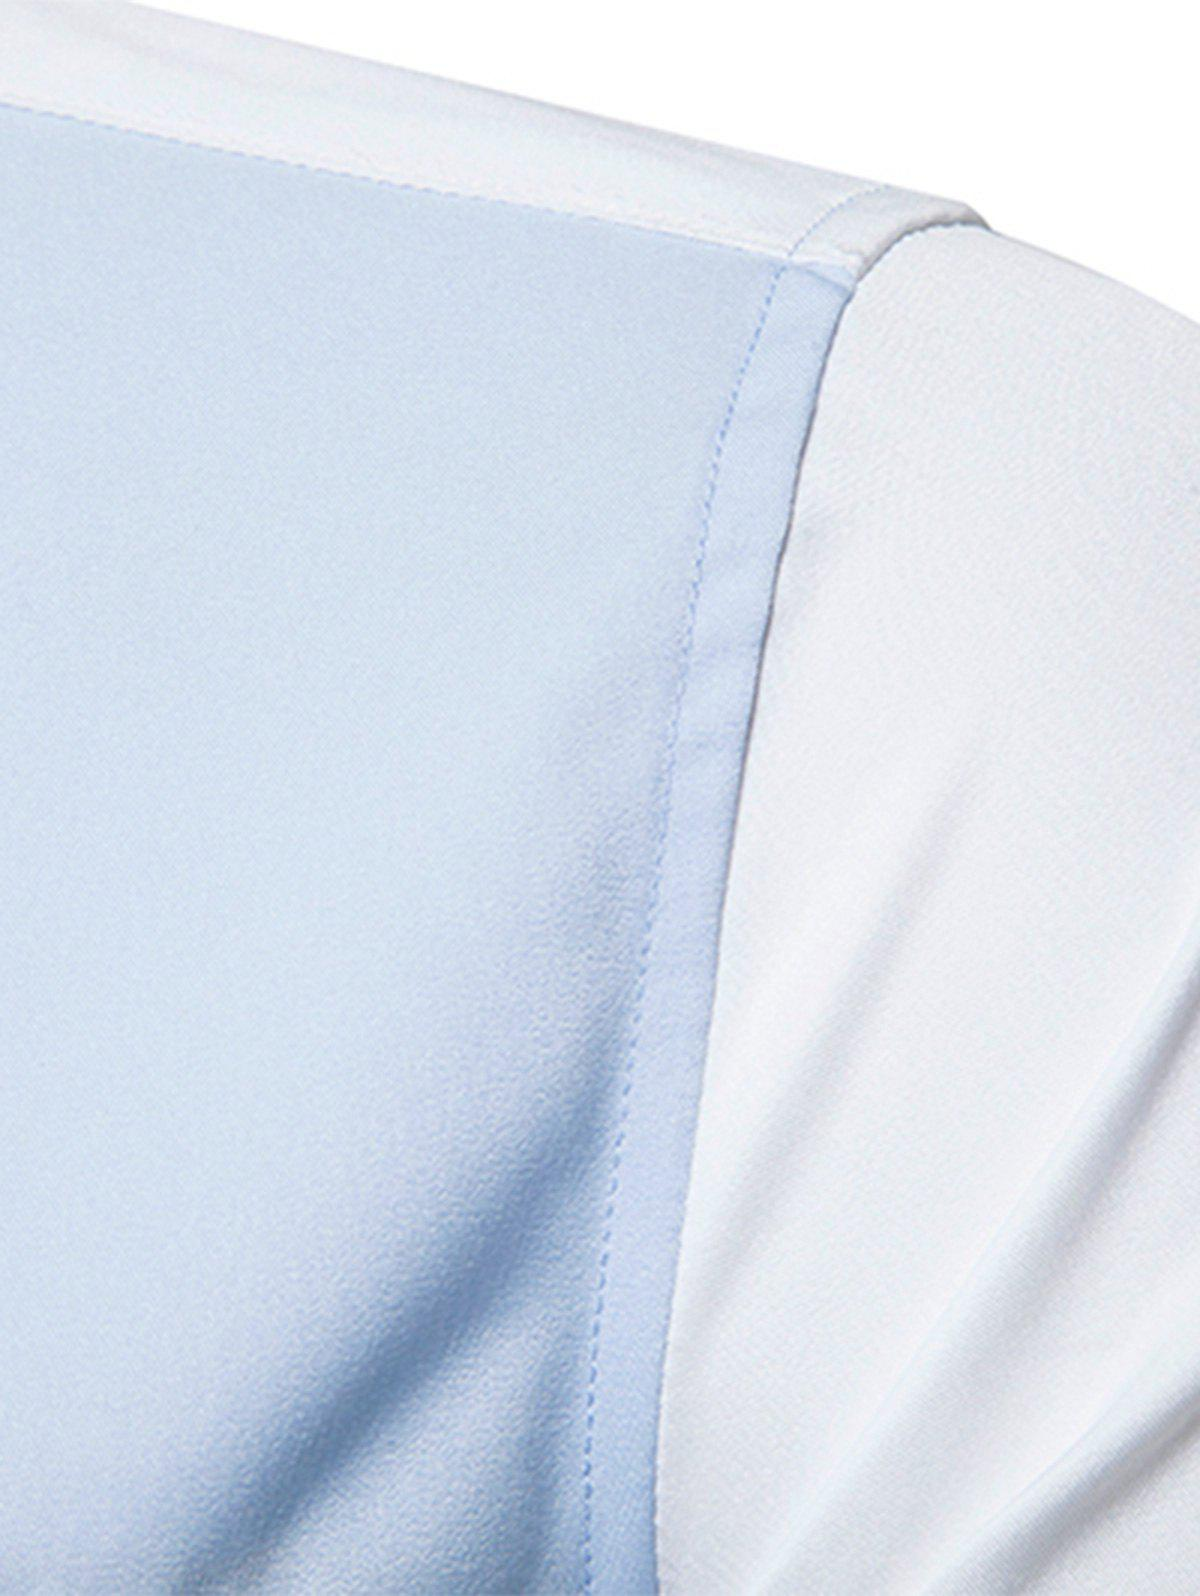 Edging Color Block Panel Button Down Shirt - Bleu clair M